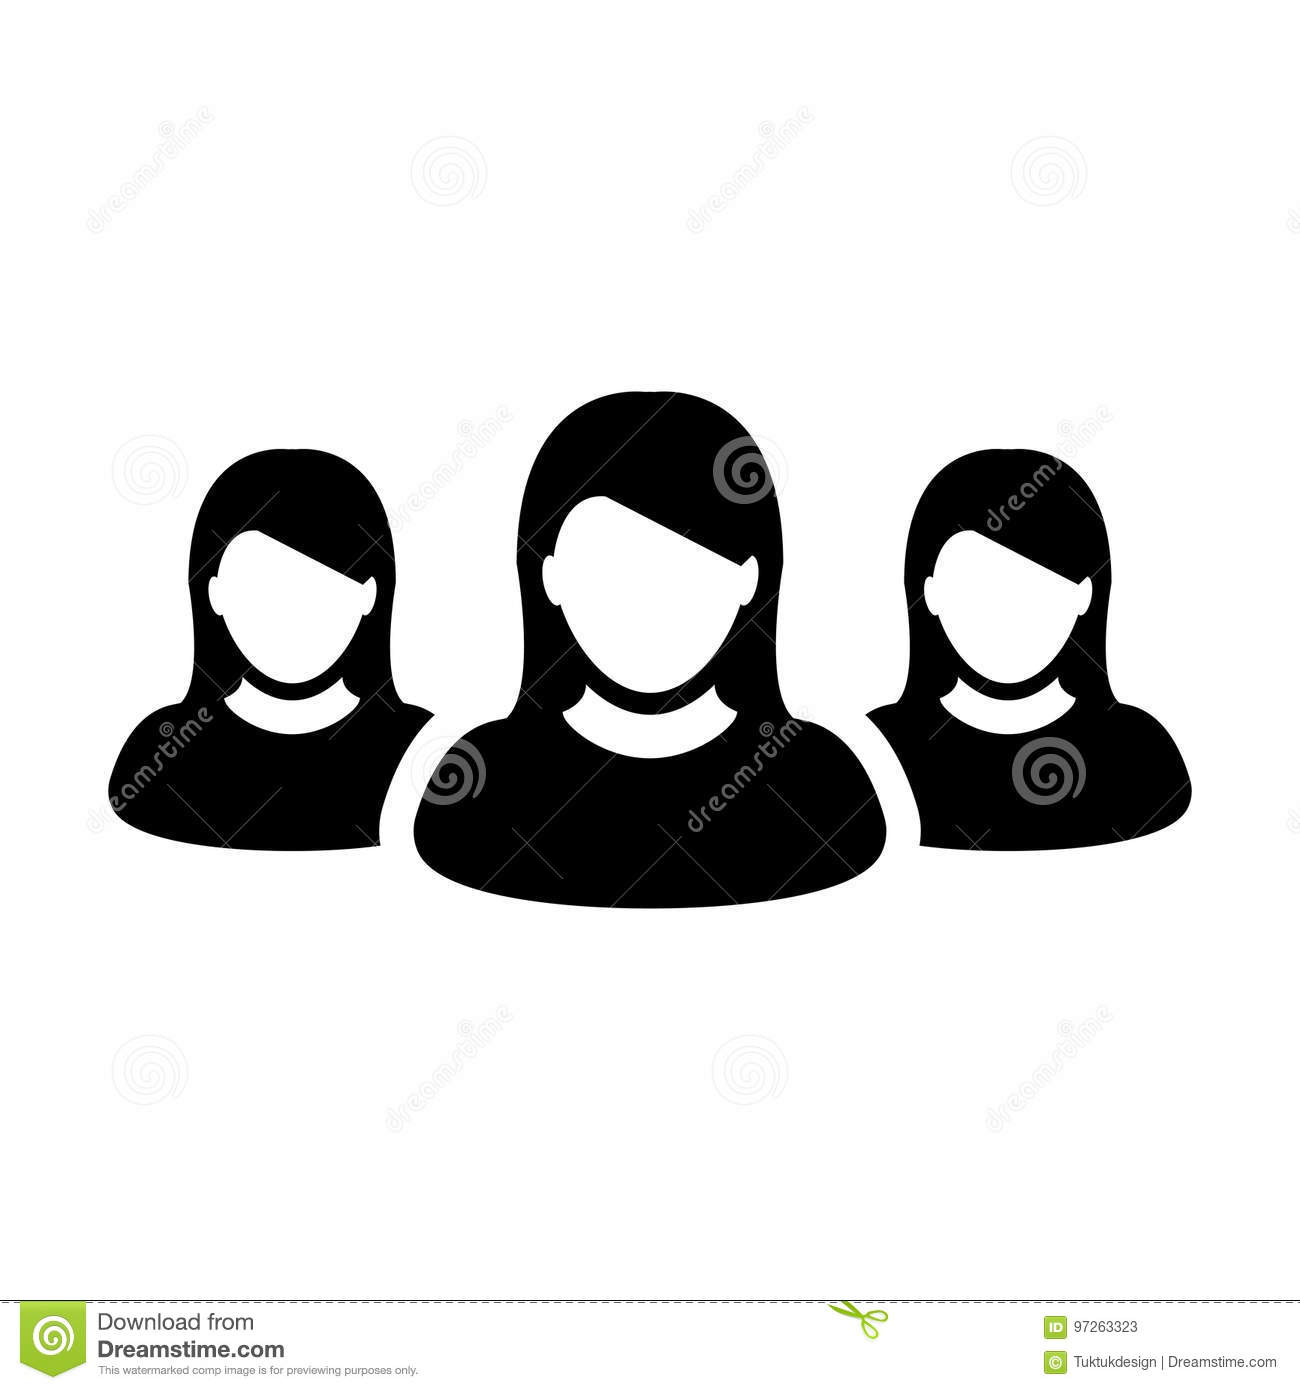 Crowd Of Indian Women Vector Avatars Stock Vector: Women Team Icon Vector User Group Of People Pictogram